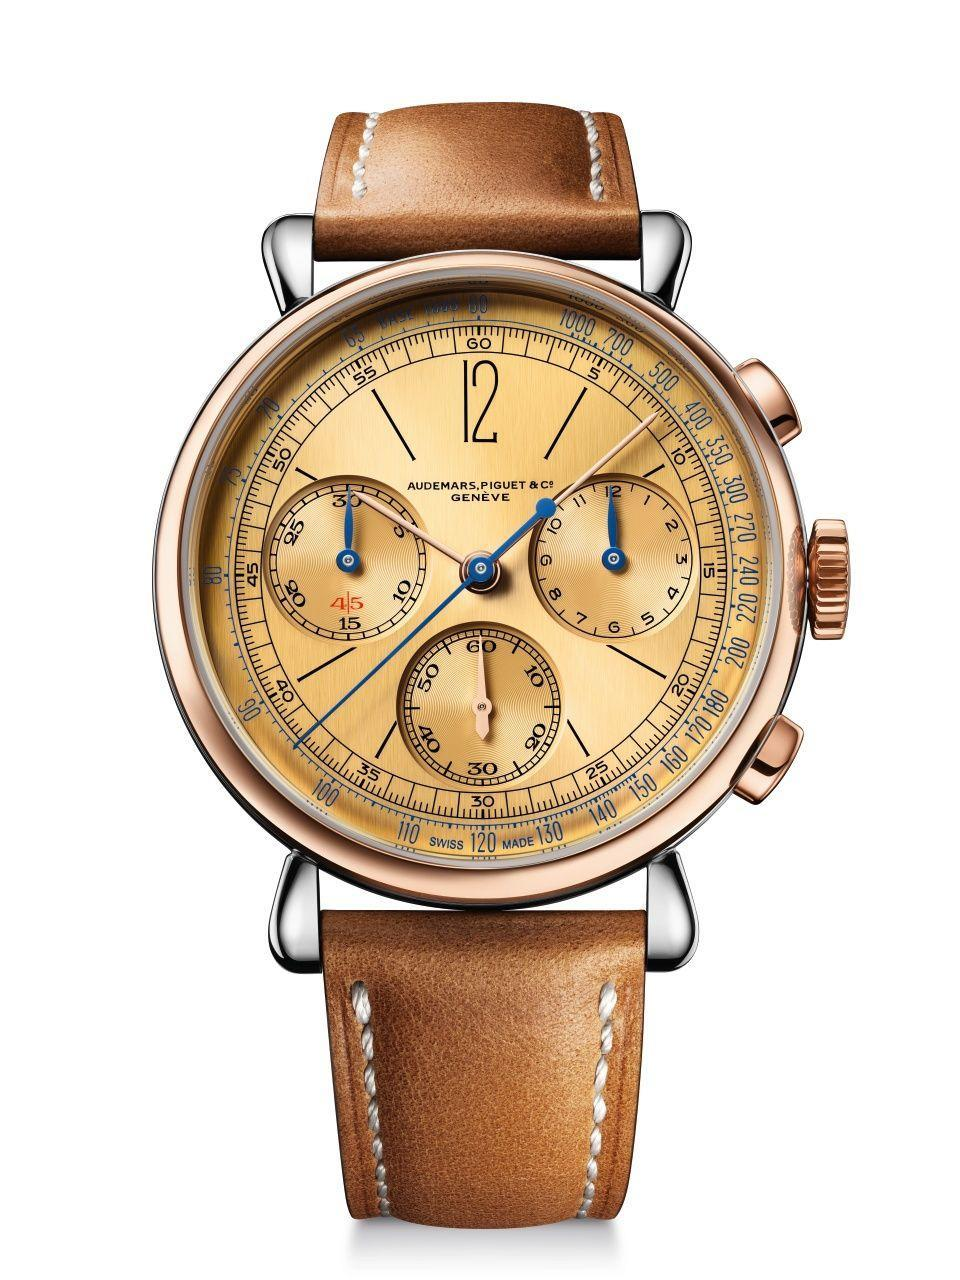 "<p>This new and improved version of the Re]master01 Selfwinding Chronograph, which was originally unveiled in 1943, is powered by the house's newest generation of self-winding chronograph mechanisms: an integrated chronograph with a column wheel and flyback function.<em>($53,100)</em></p><p><a class=""link rapid-noclick-resp"" href=""https://www.audemarspiguet.com/en/watch-collection/remaster/26595SR.OO.A032VE.01/#!/welcome"" rel=""nofollow noopener"" target=""_blank"" data-ylk=""slk:Learn More"">Learn More</a></p>"